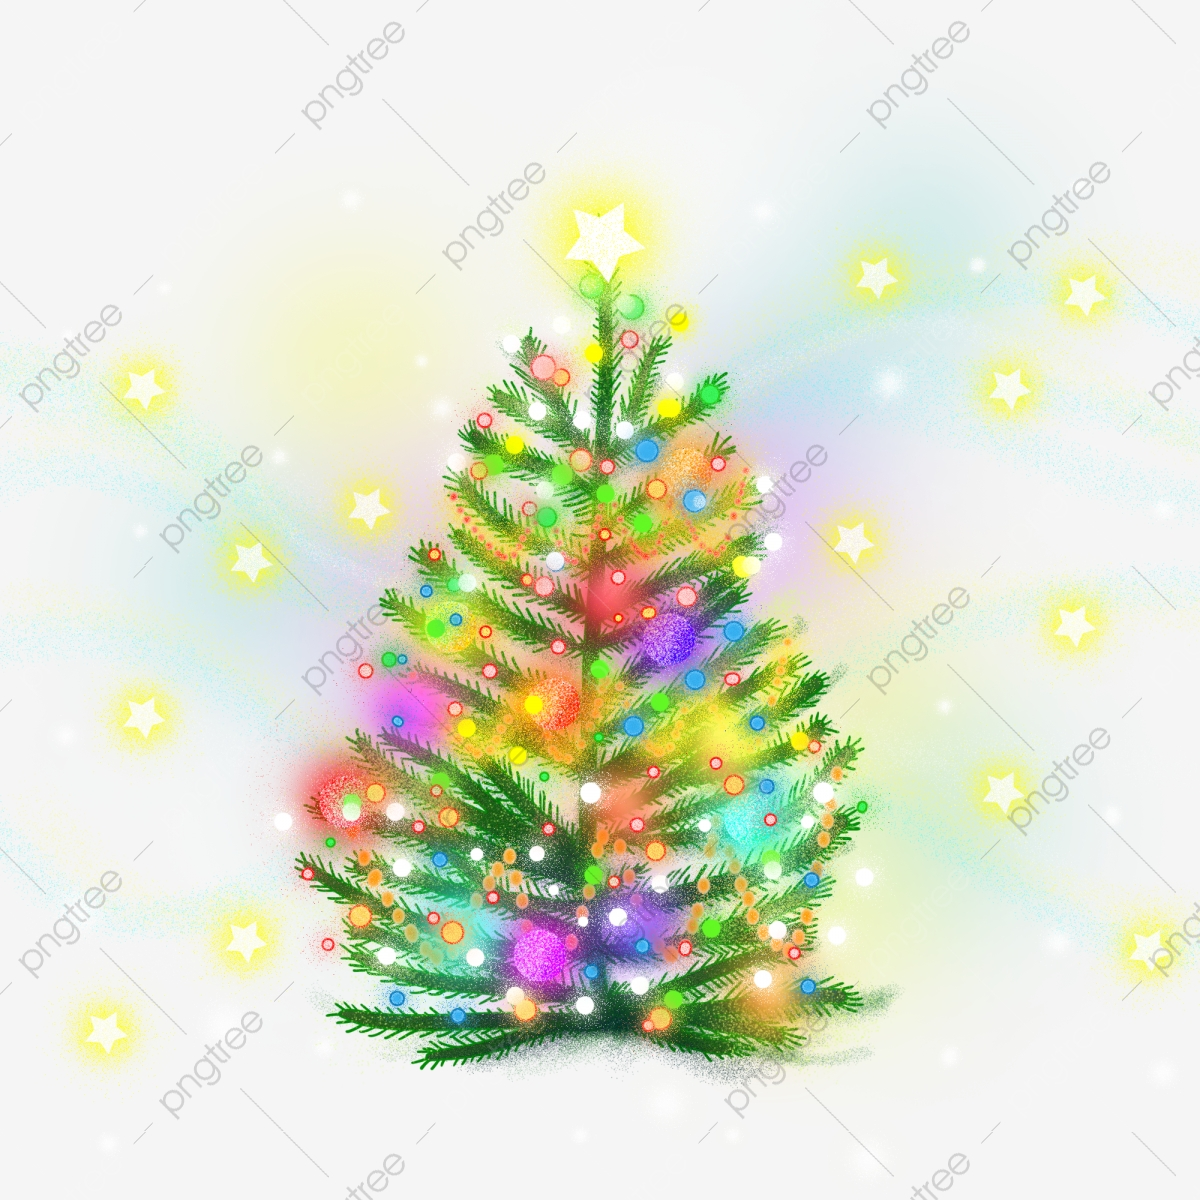 Dream Colorful Christmas Tree Hand Painted Illustration Tree Plant Png Transparent Clipart Image And Psd File For Free Download